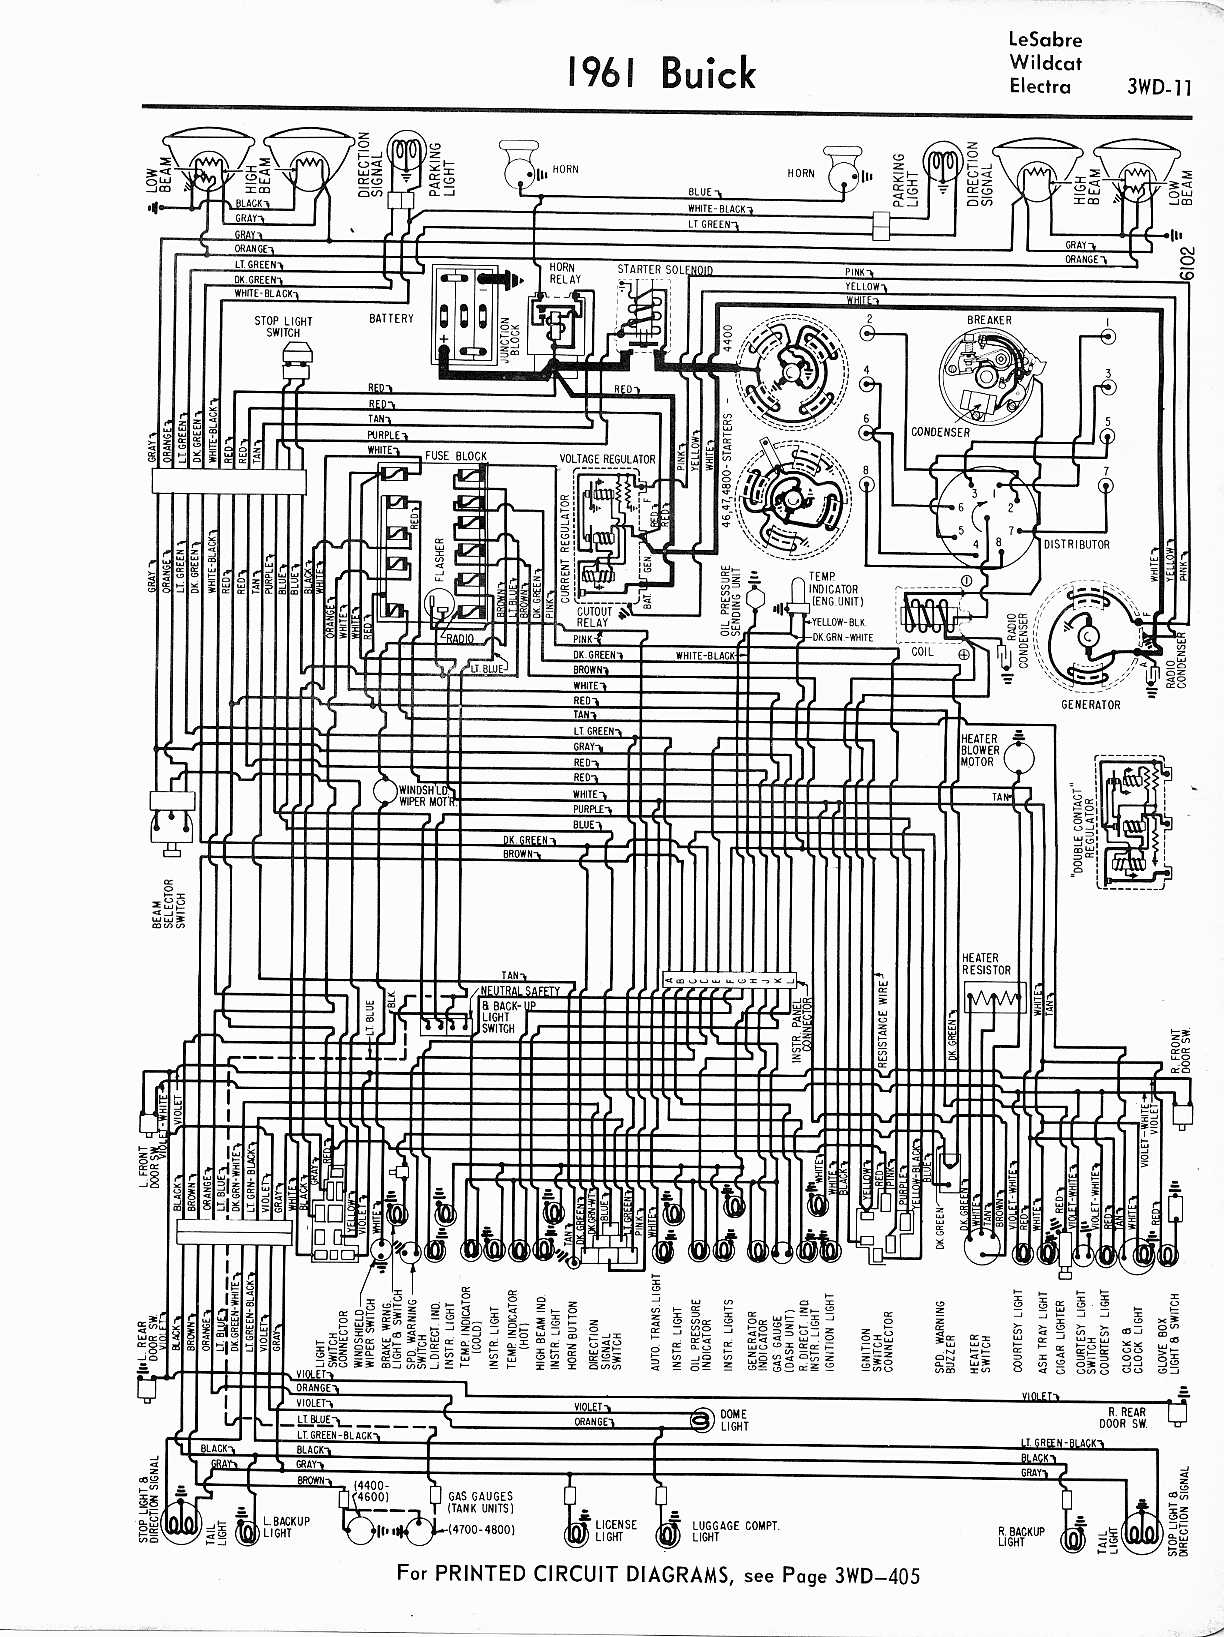 MWireBuic65_3WD 011 buick wiring diagrams 1957 1965 97 Buick LeSabre Belt Diagram at gsmx.co